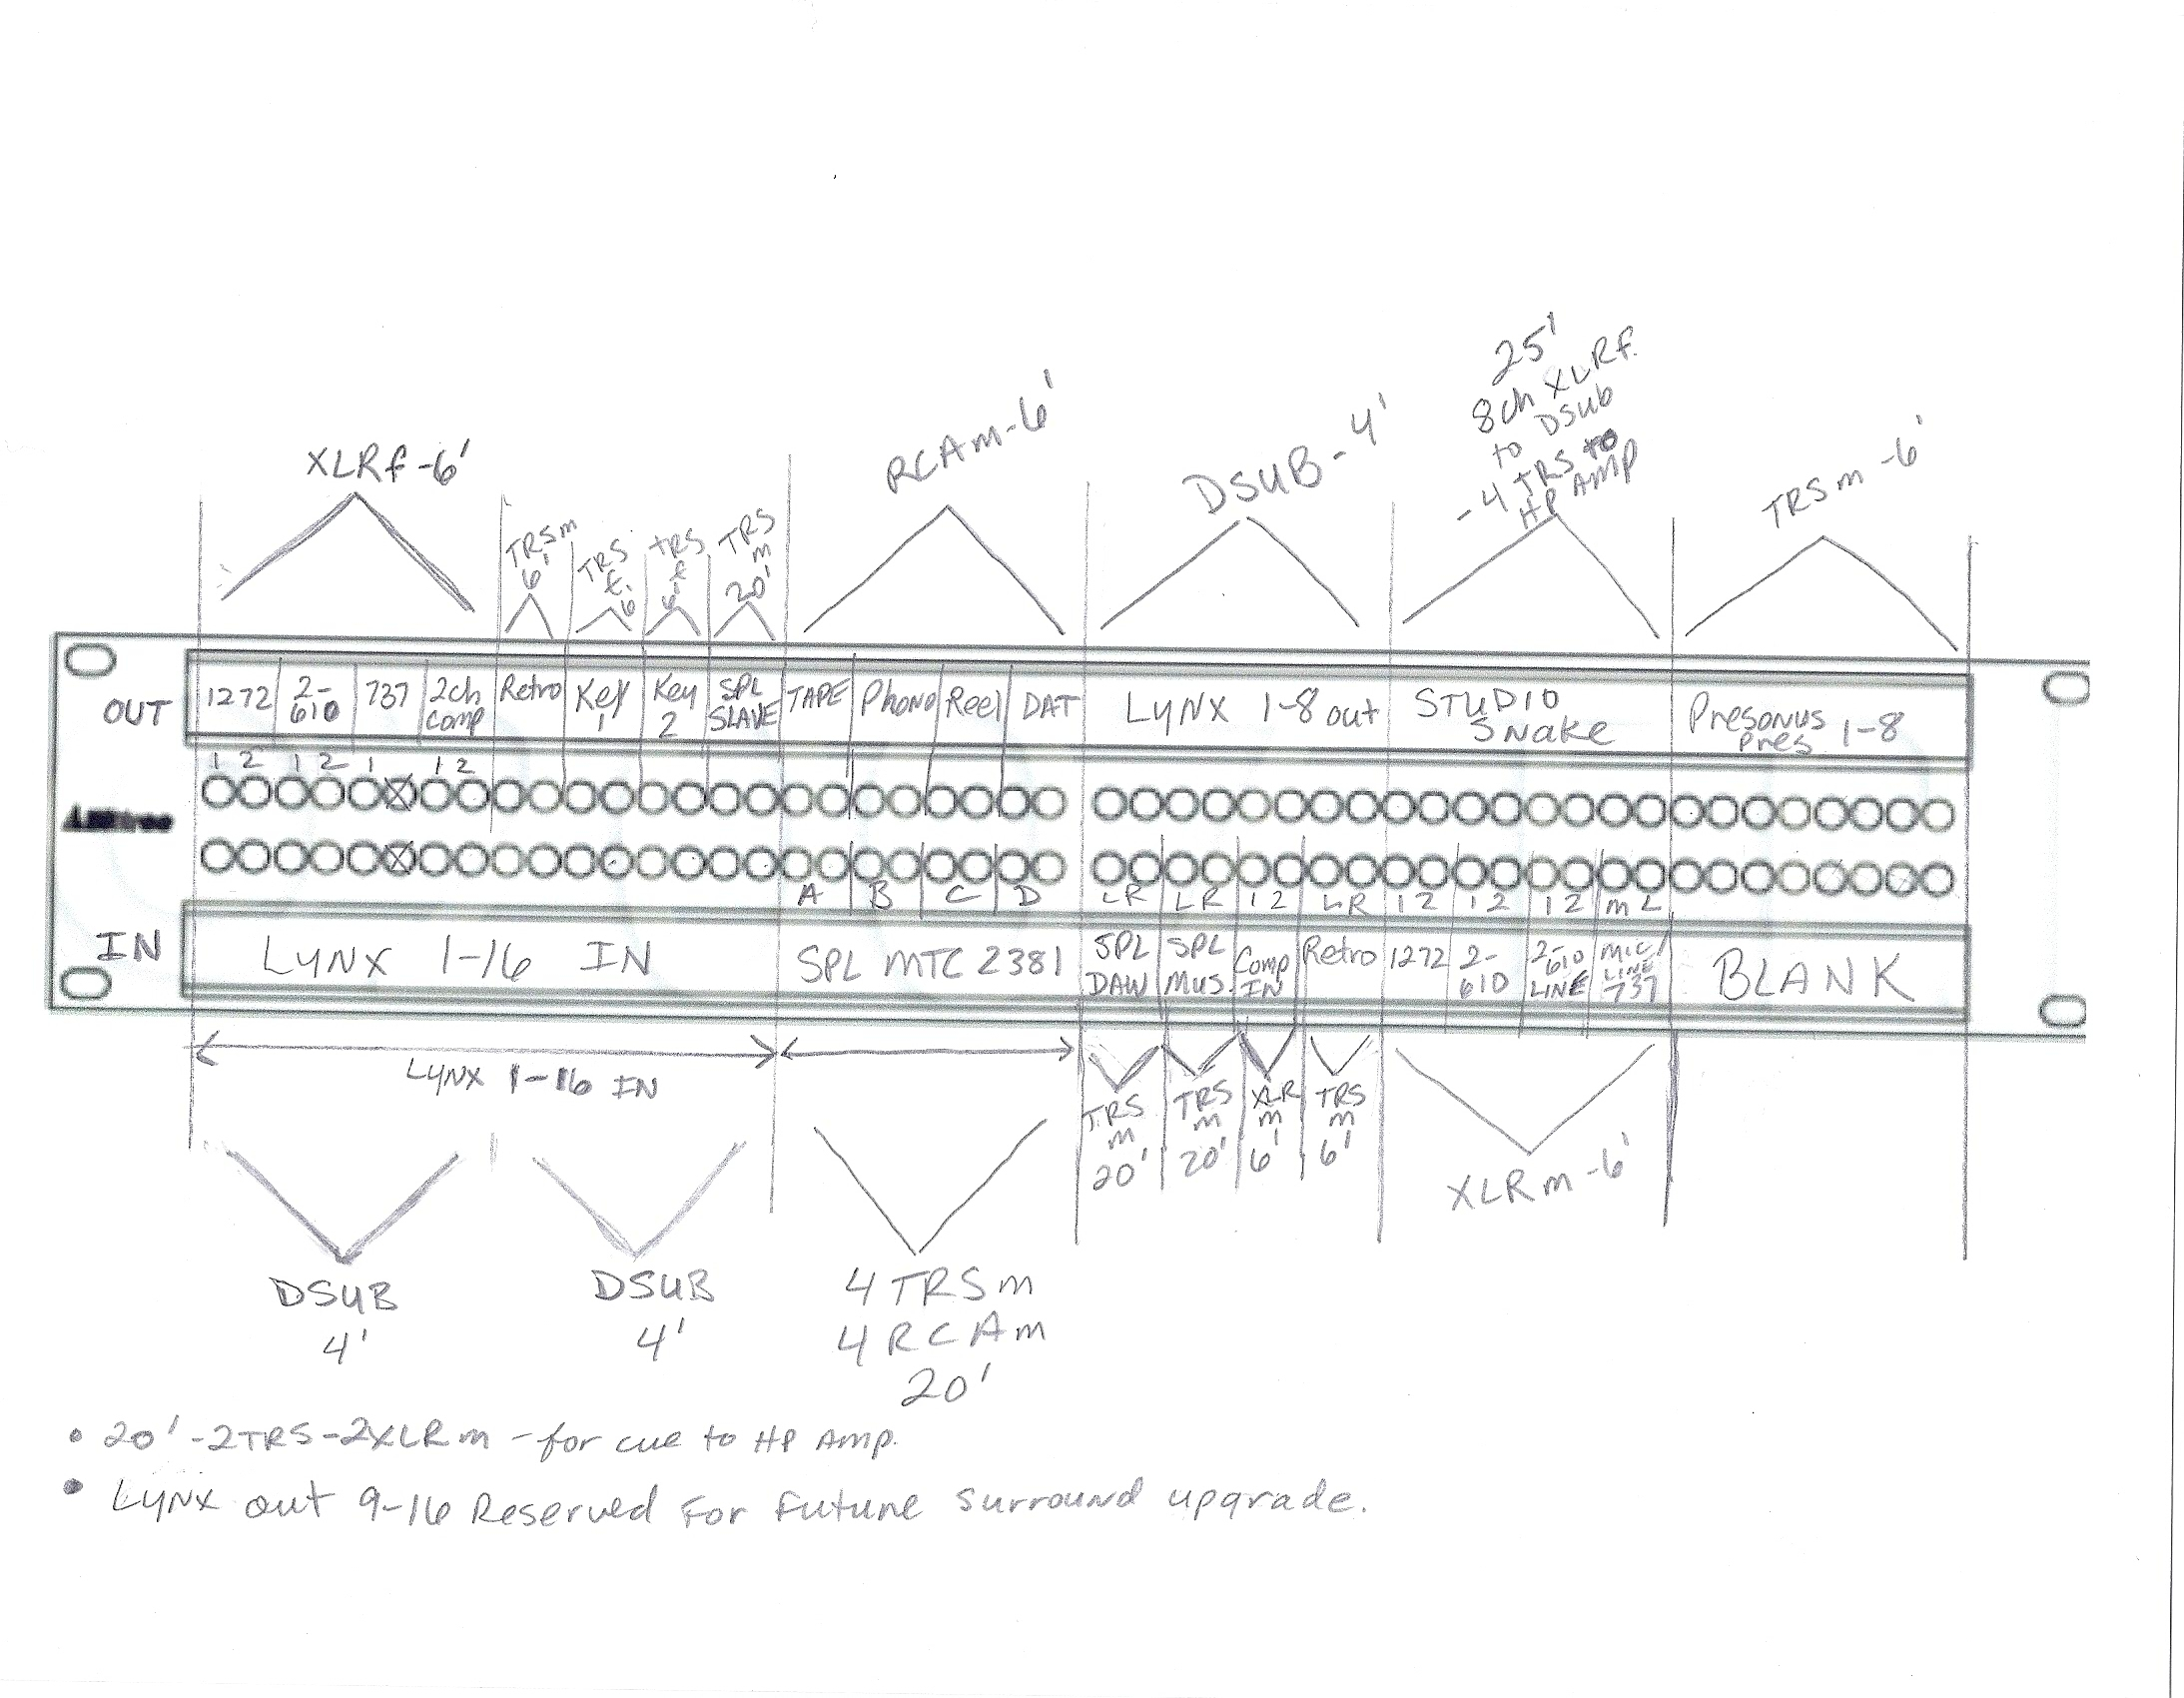 TT Patchbay Setup Diagram, Opinions? JPG and PDF Attached